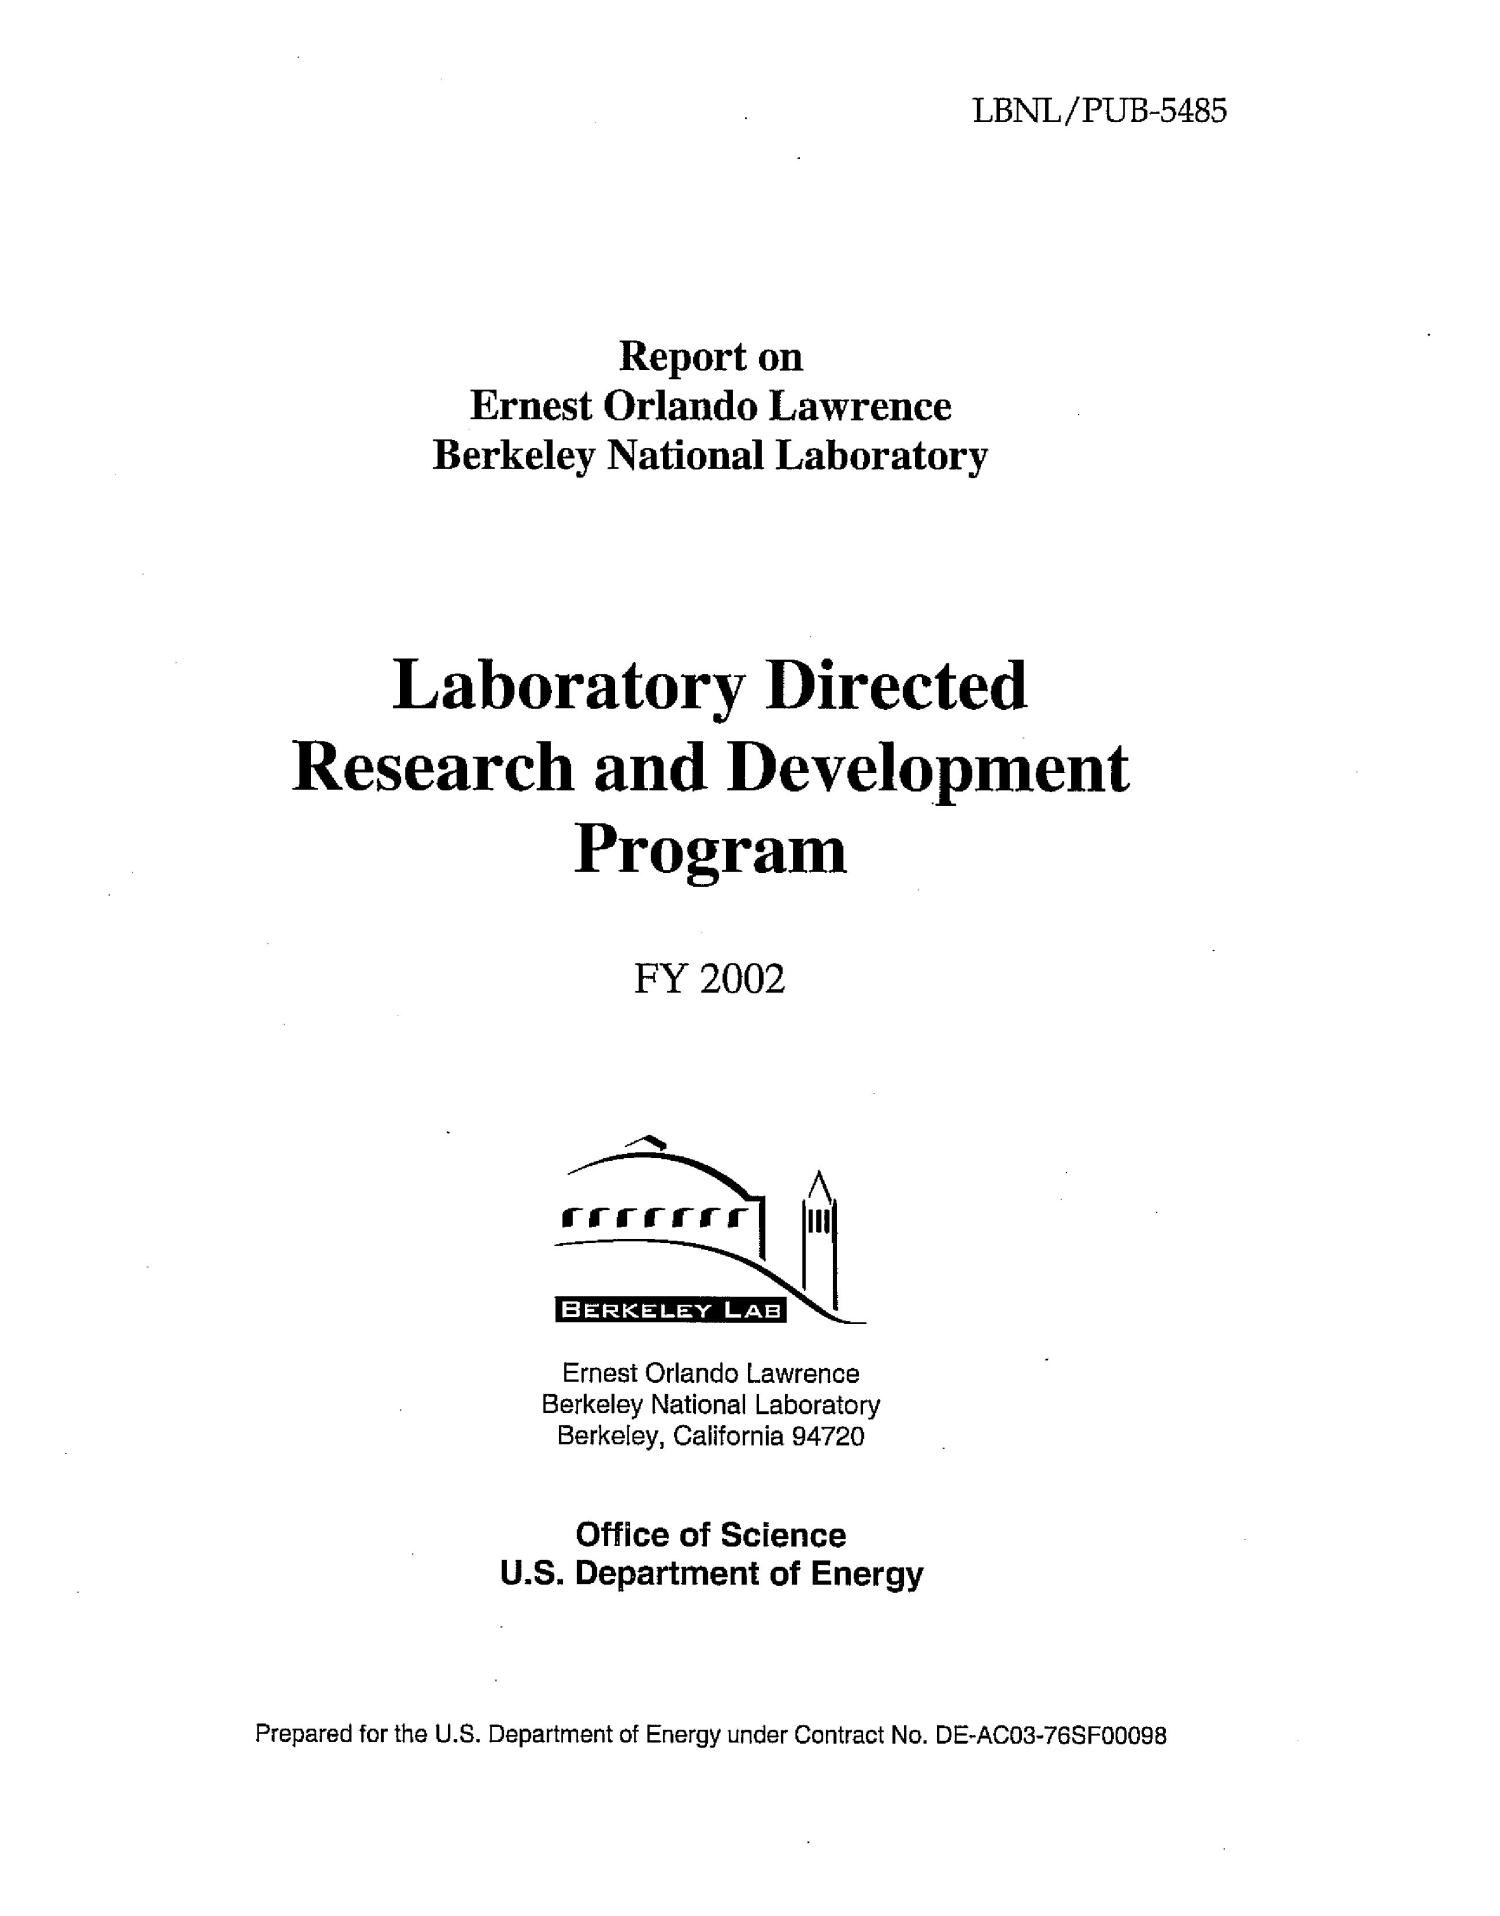 Laboratory directed research and development FY2002 report                                                                                                      [Sequence #]: 3 of 144